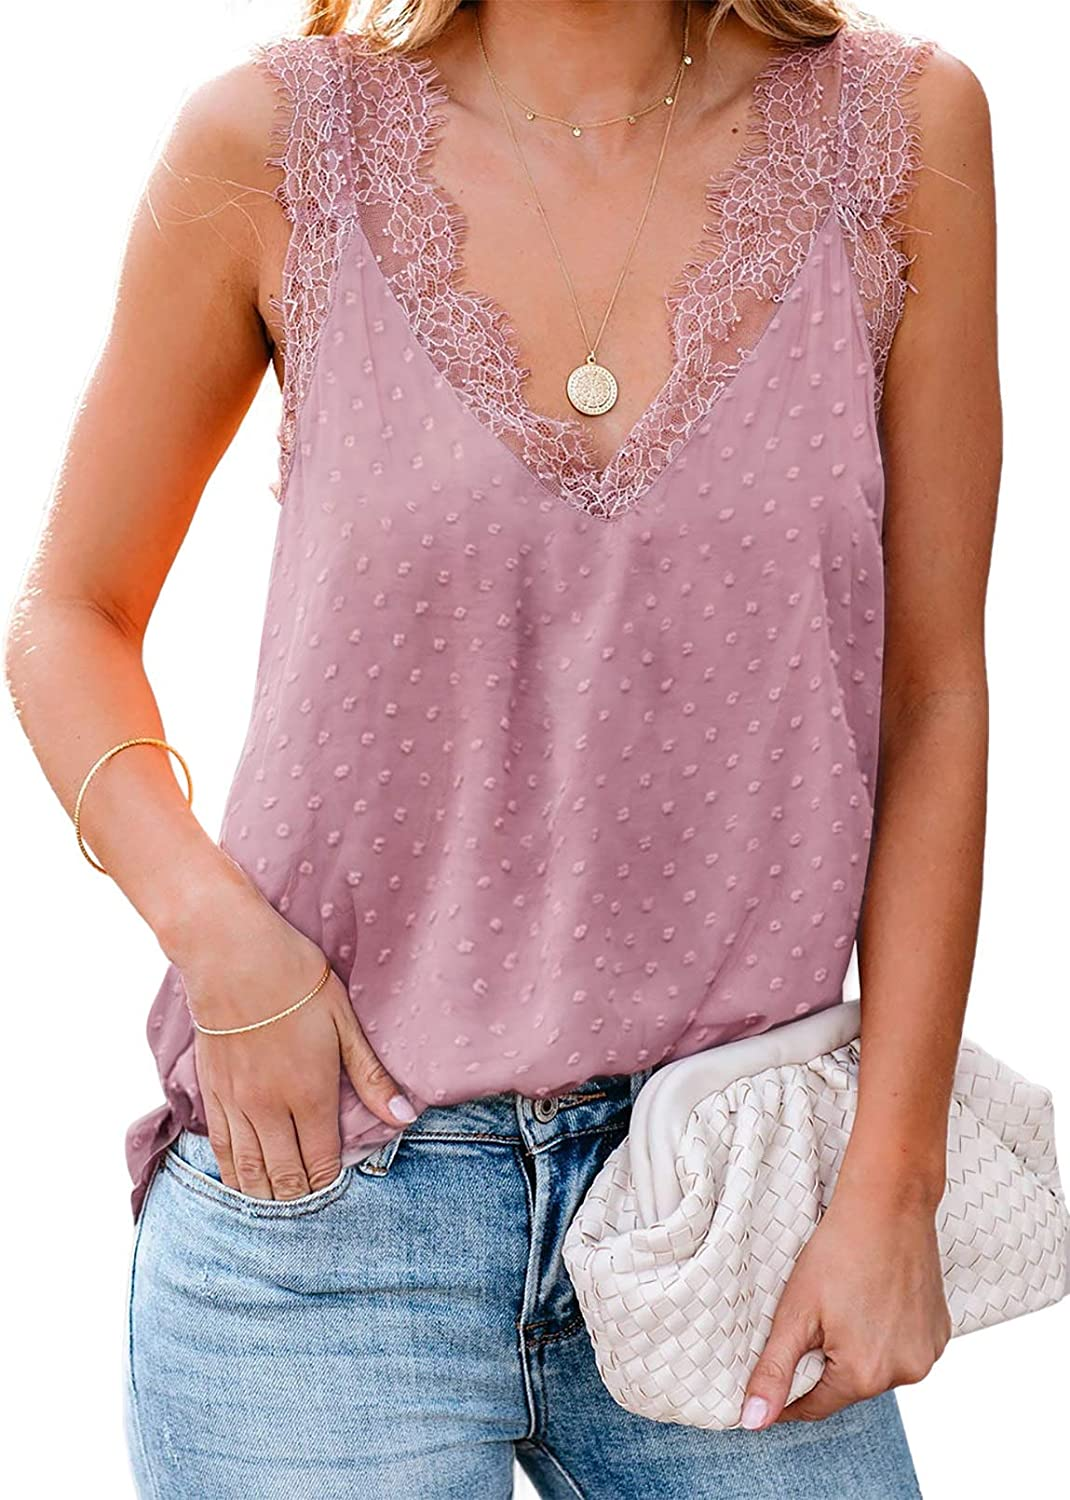 Canikat Womens Lace Trim Tank Tops Sexy V Neck Cami Top Casual Loose Sleeveless Shirts Blouse Camisole Pink Medium